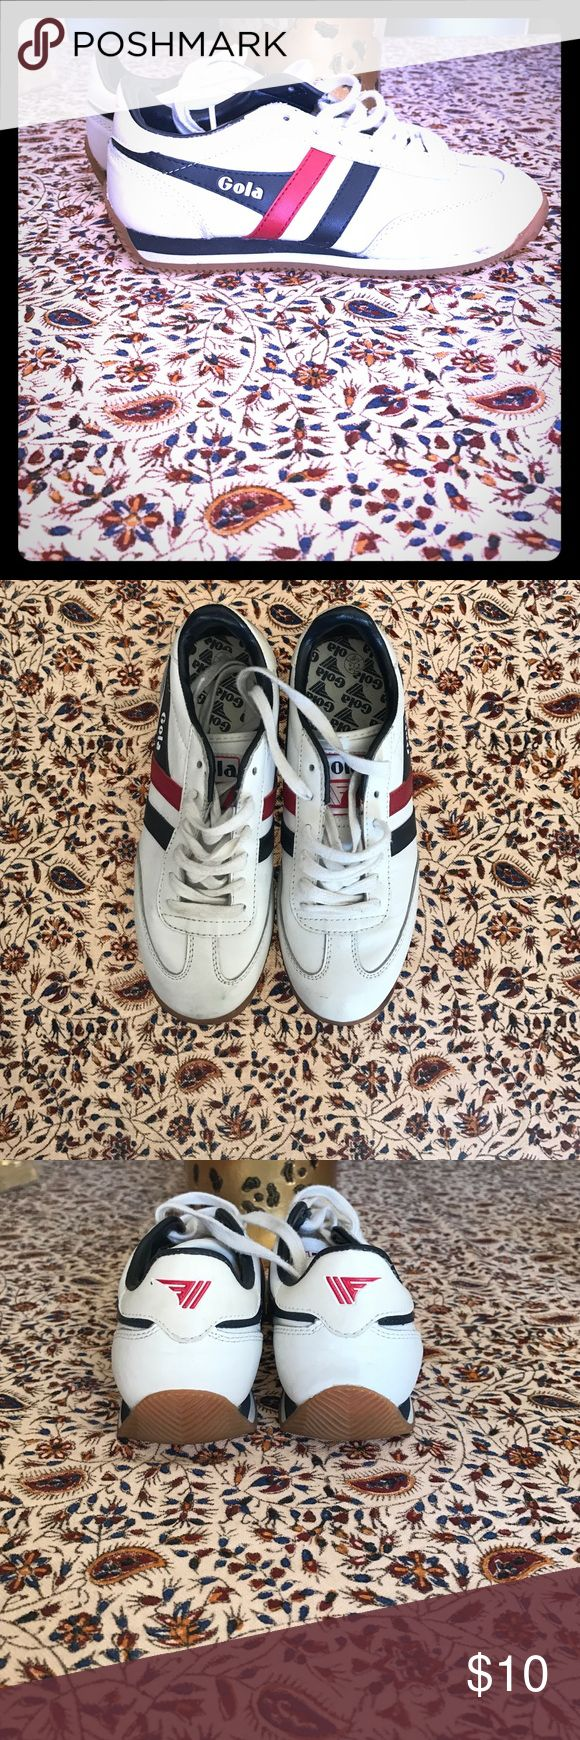 Retro sneakers Some scuffs and stains but otherwise in good condition retro sneakers. Gola Shoes Sneakers